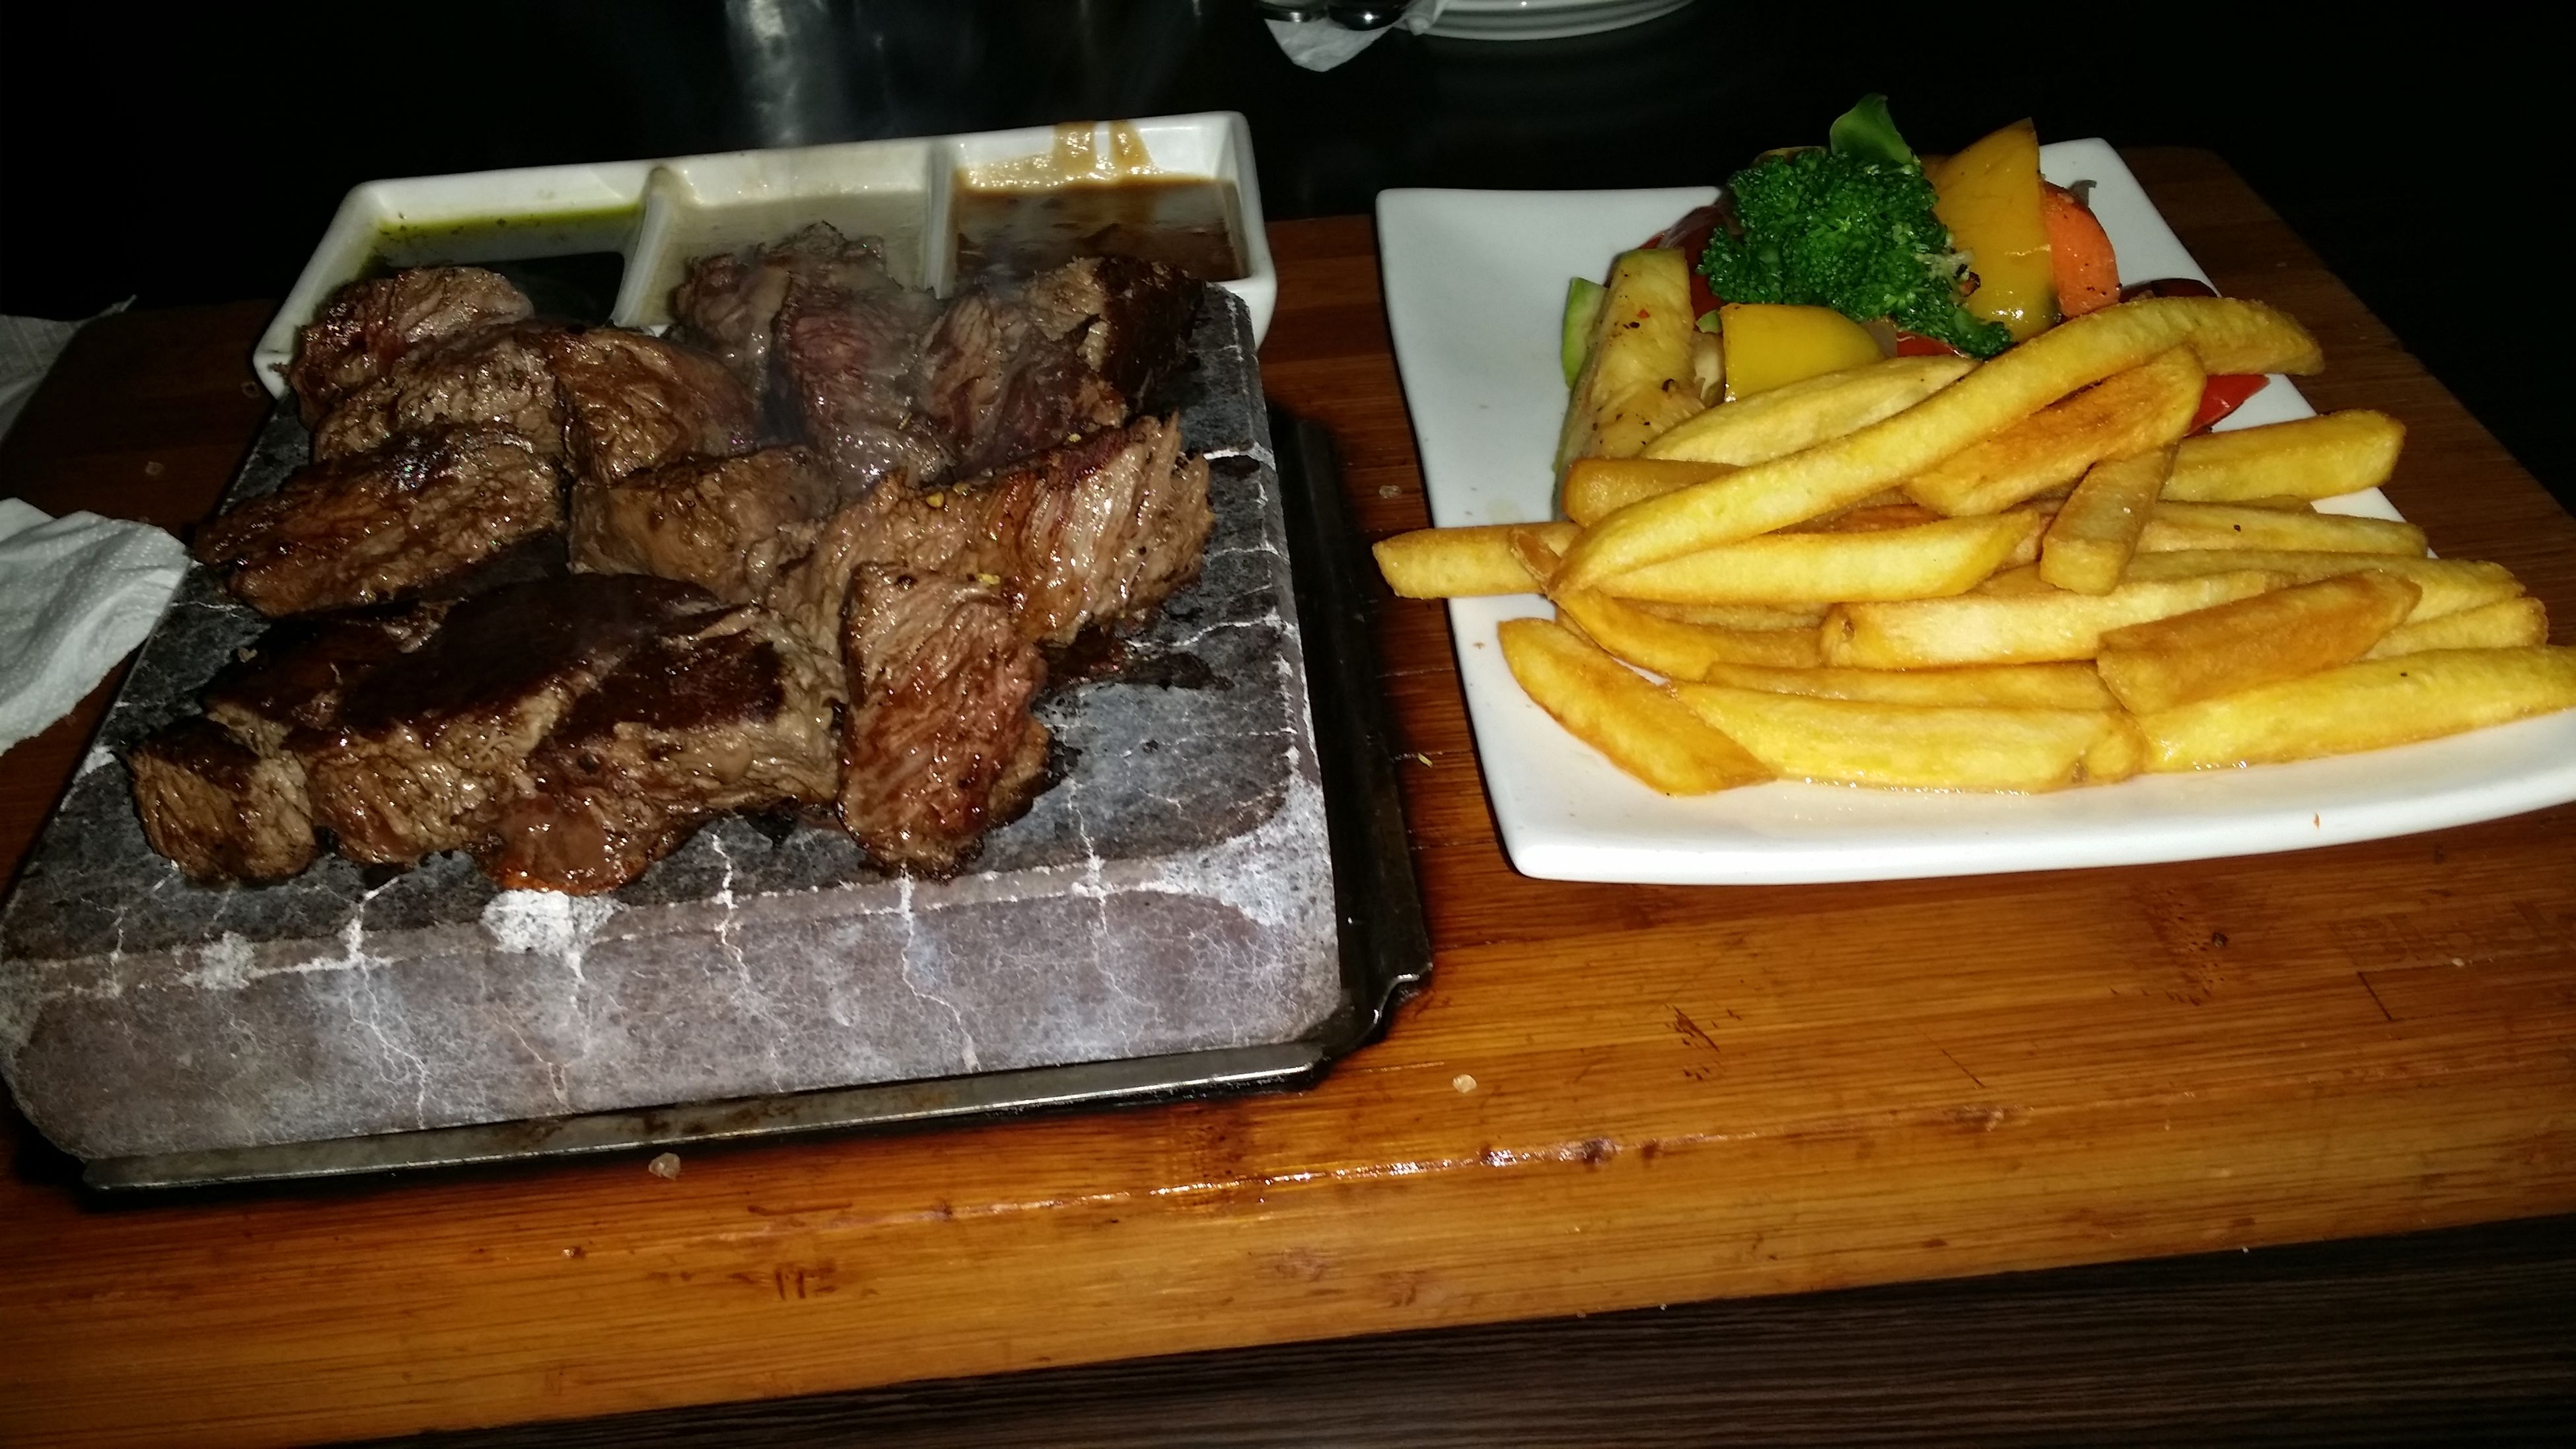 food and drink, food, indoors, freshness, ready-to-eat, still life, table, healthy eating, meat, meal, plate, high angle view, slice, indulgence, close-up, serving size, cutting board, fork, french fries